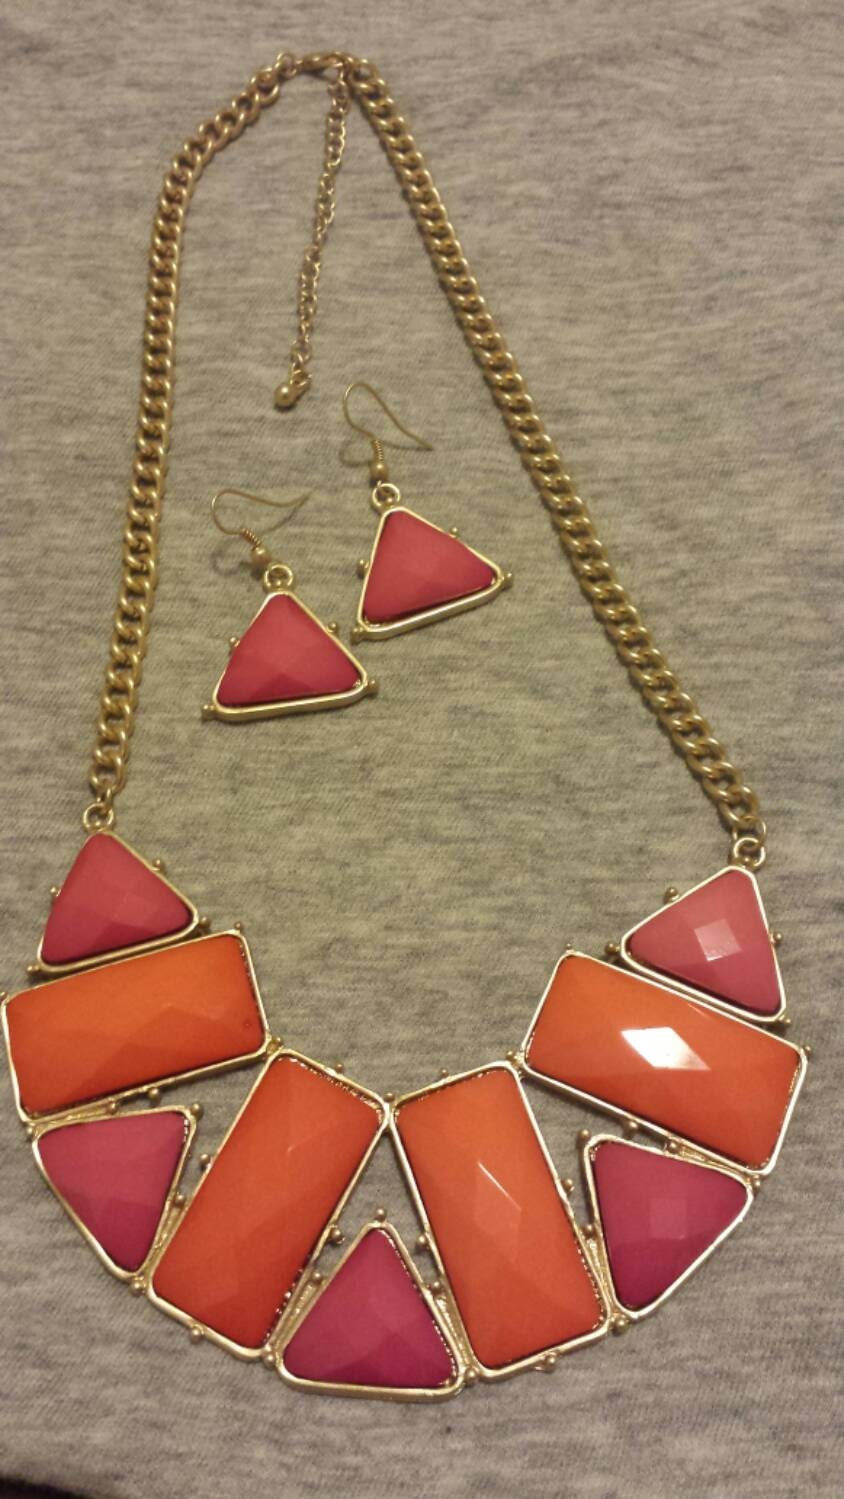 Pink and Orange Statement Necklace with Dangle Earrings Gifts for Her Chunky Necklace Bib Necklace Necklace Sets Dangle Earrings Gold Chain